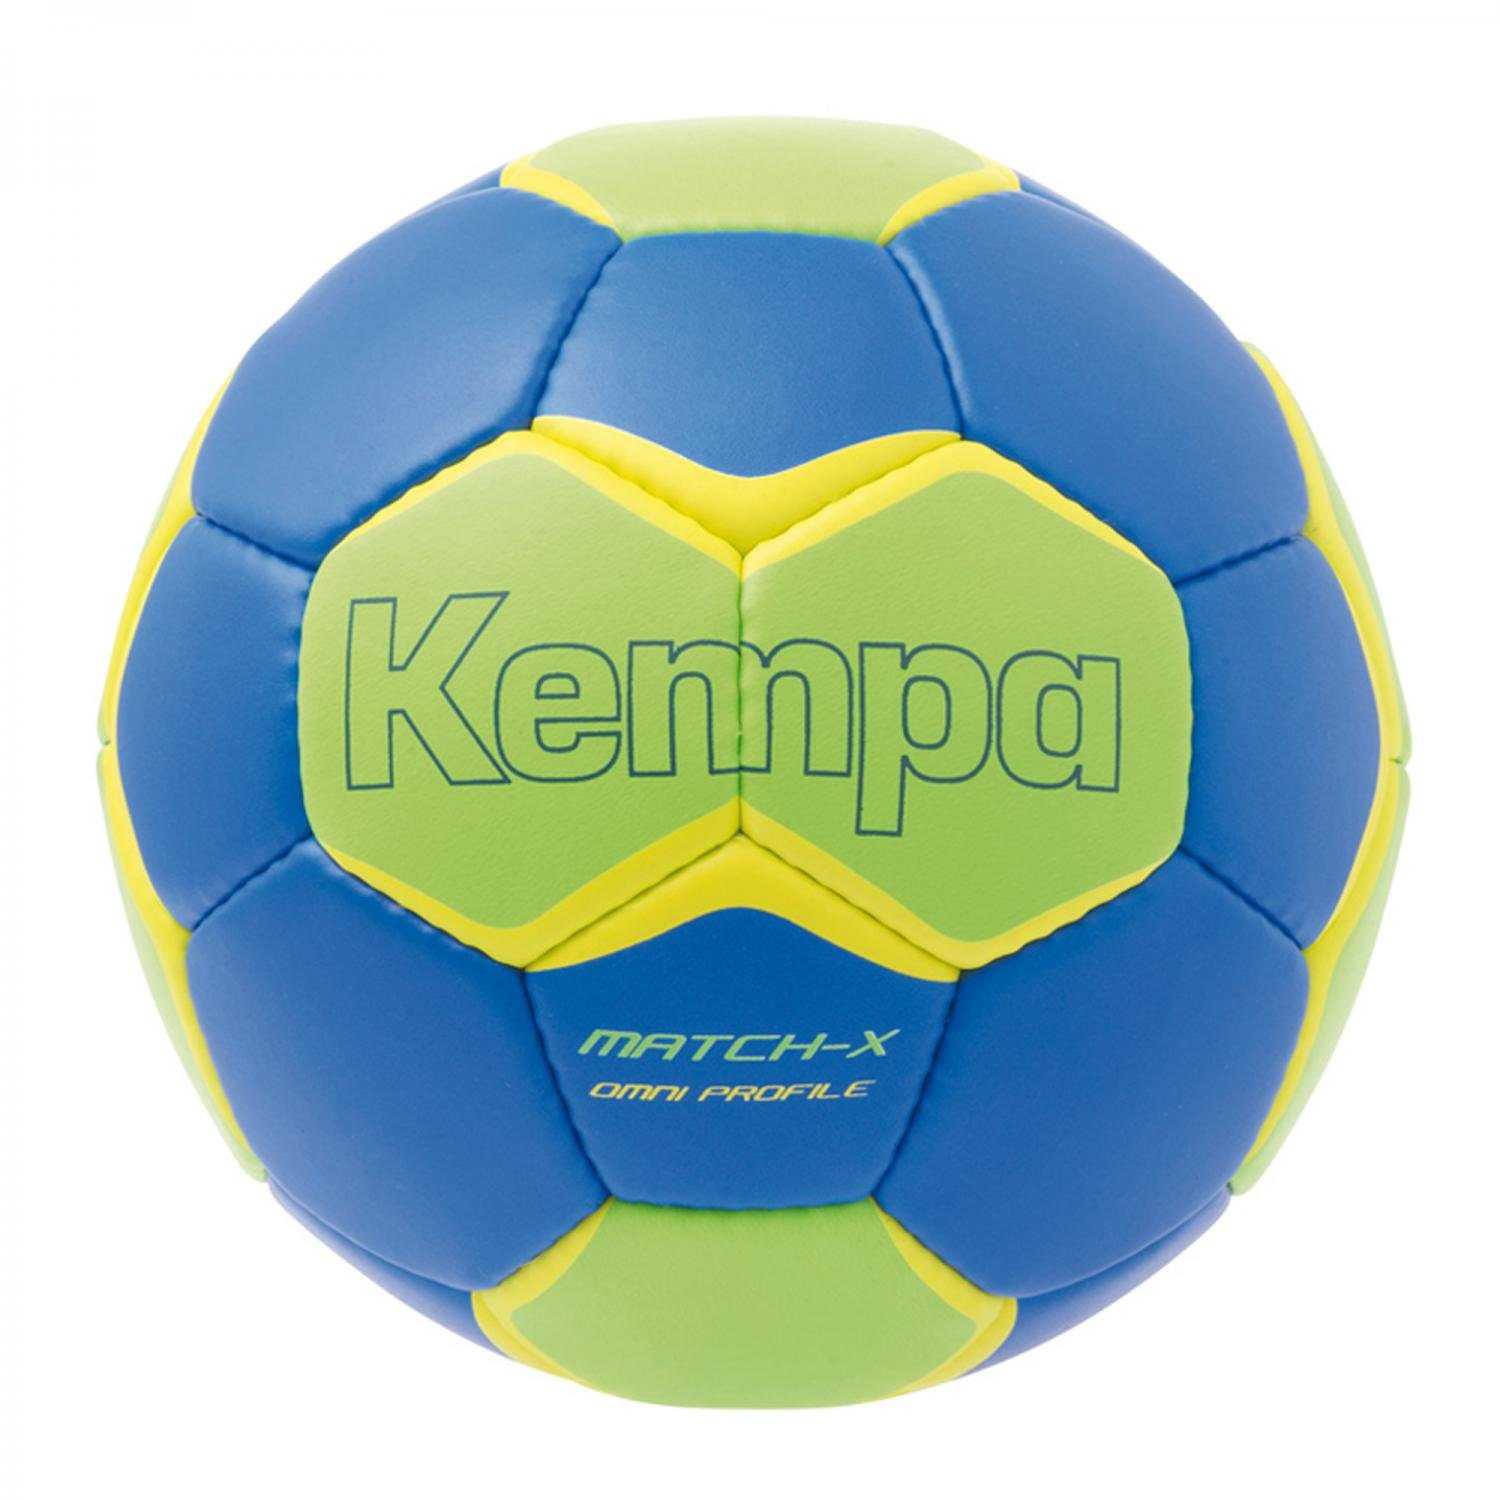 Kempa Handball Match-X Omni Profile - Pelota de Balonmano, Color ...